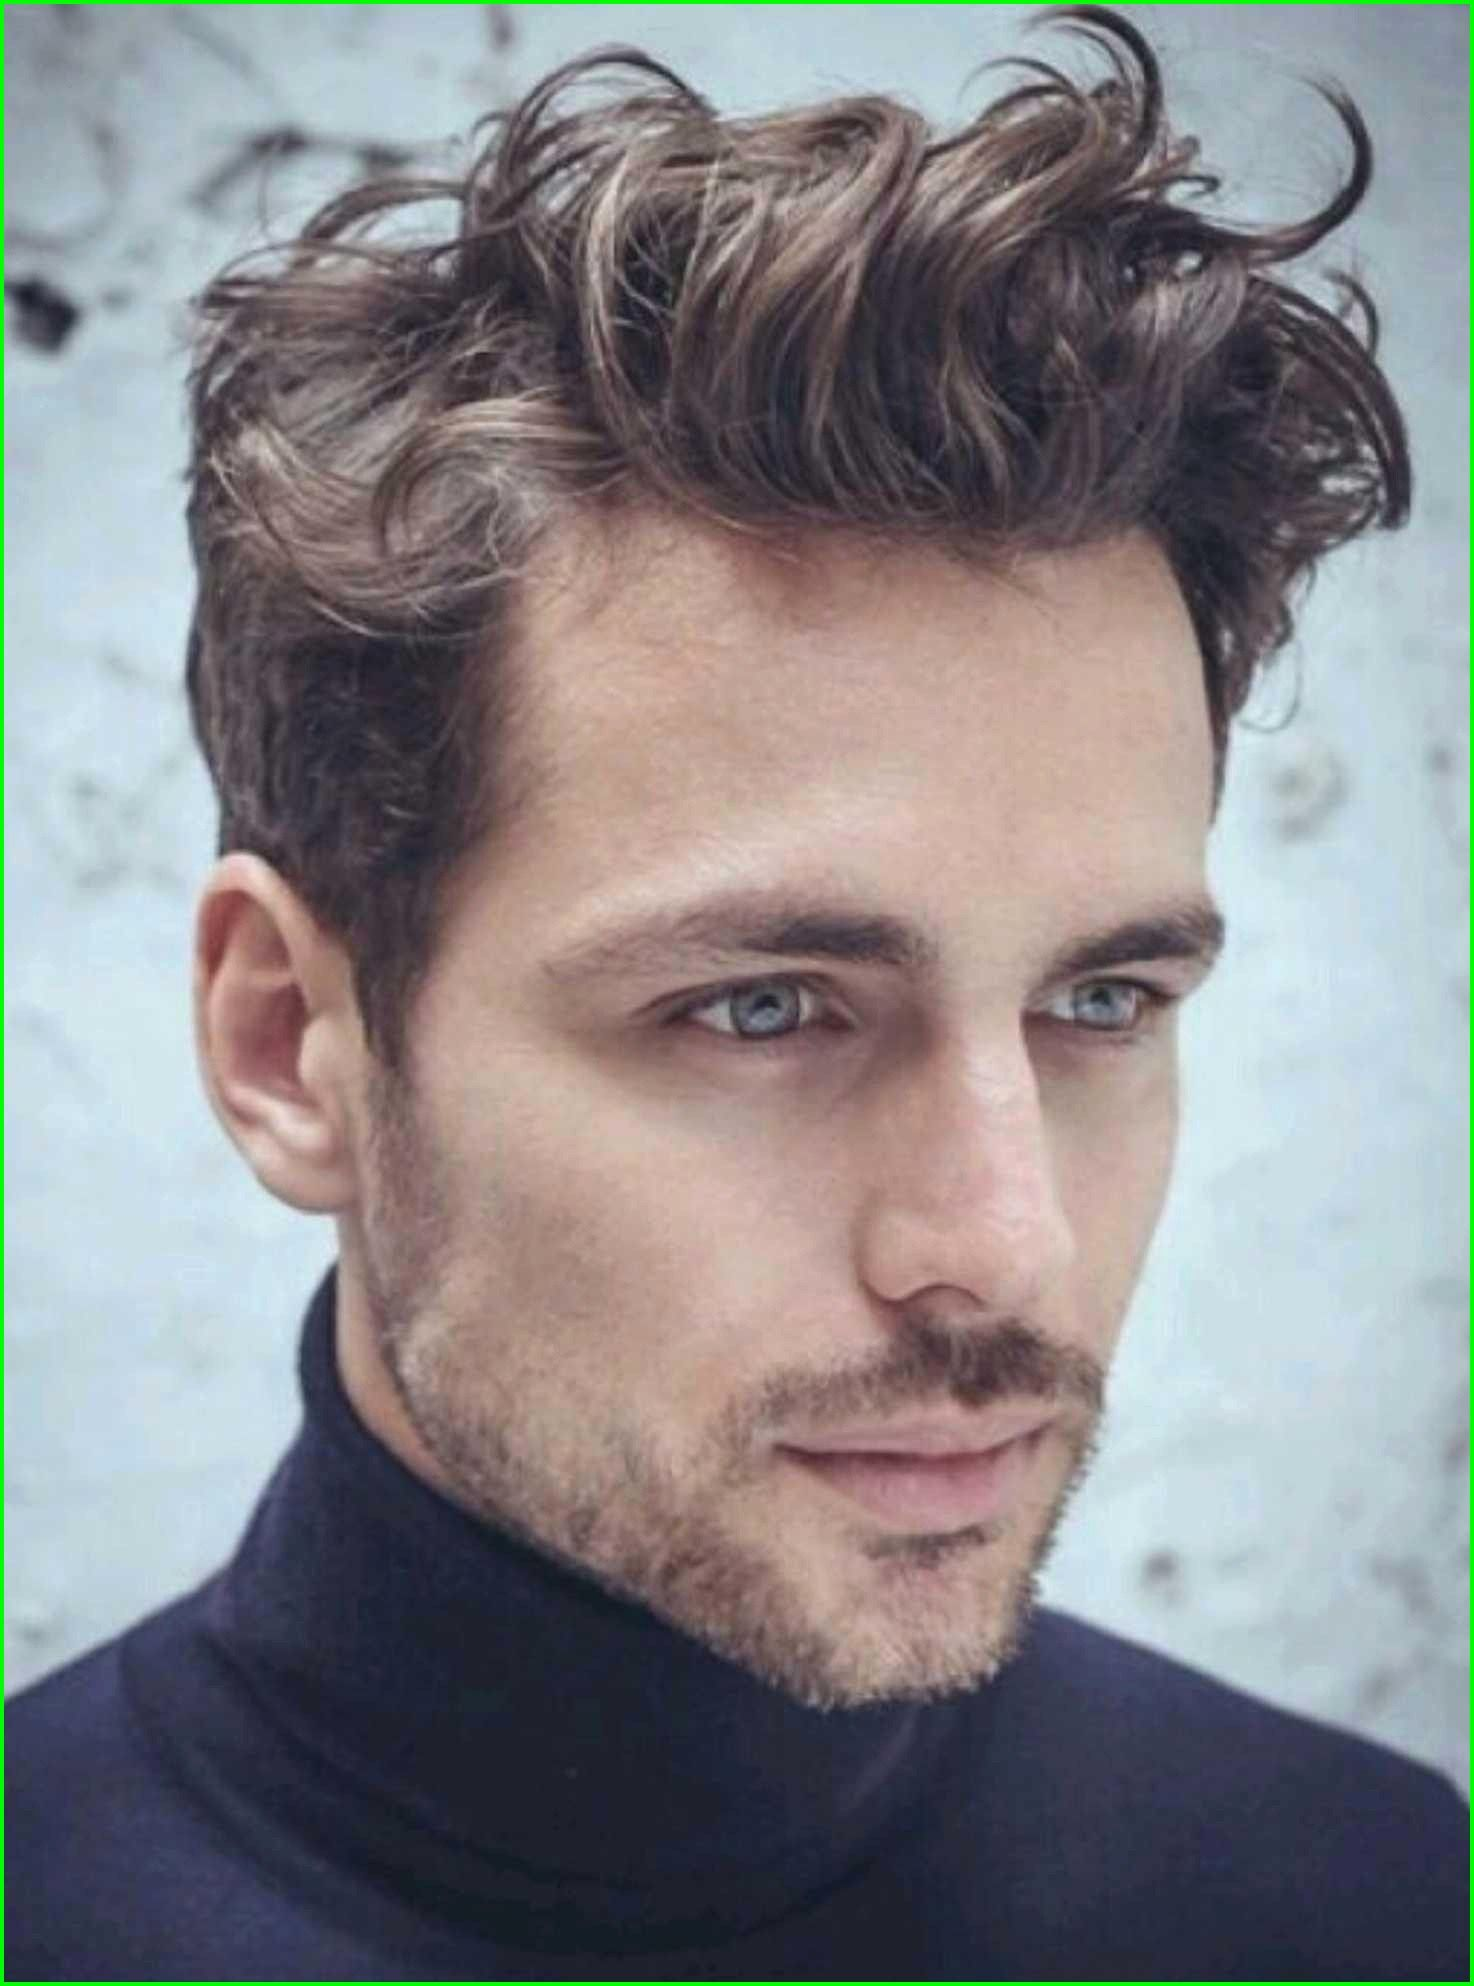 25 Best Pompadour Hairstyles Haircuts For Men 2020 Guide Oval Face Men Oval Face Hairstyles Face Shape Hairstyles